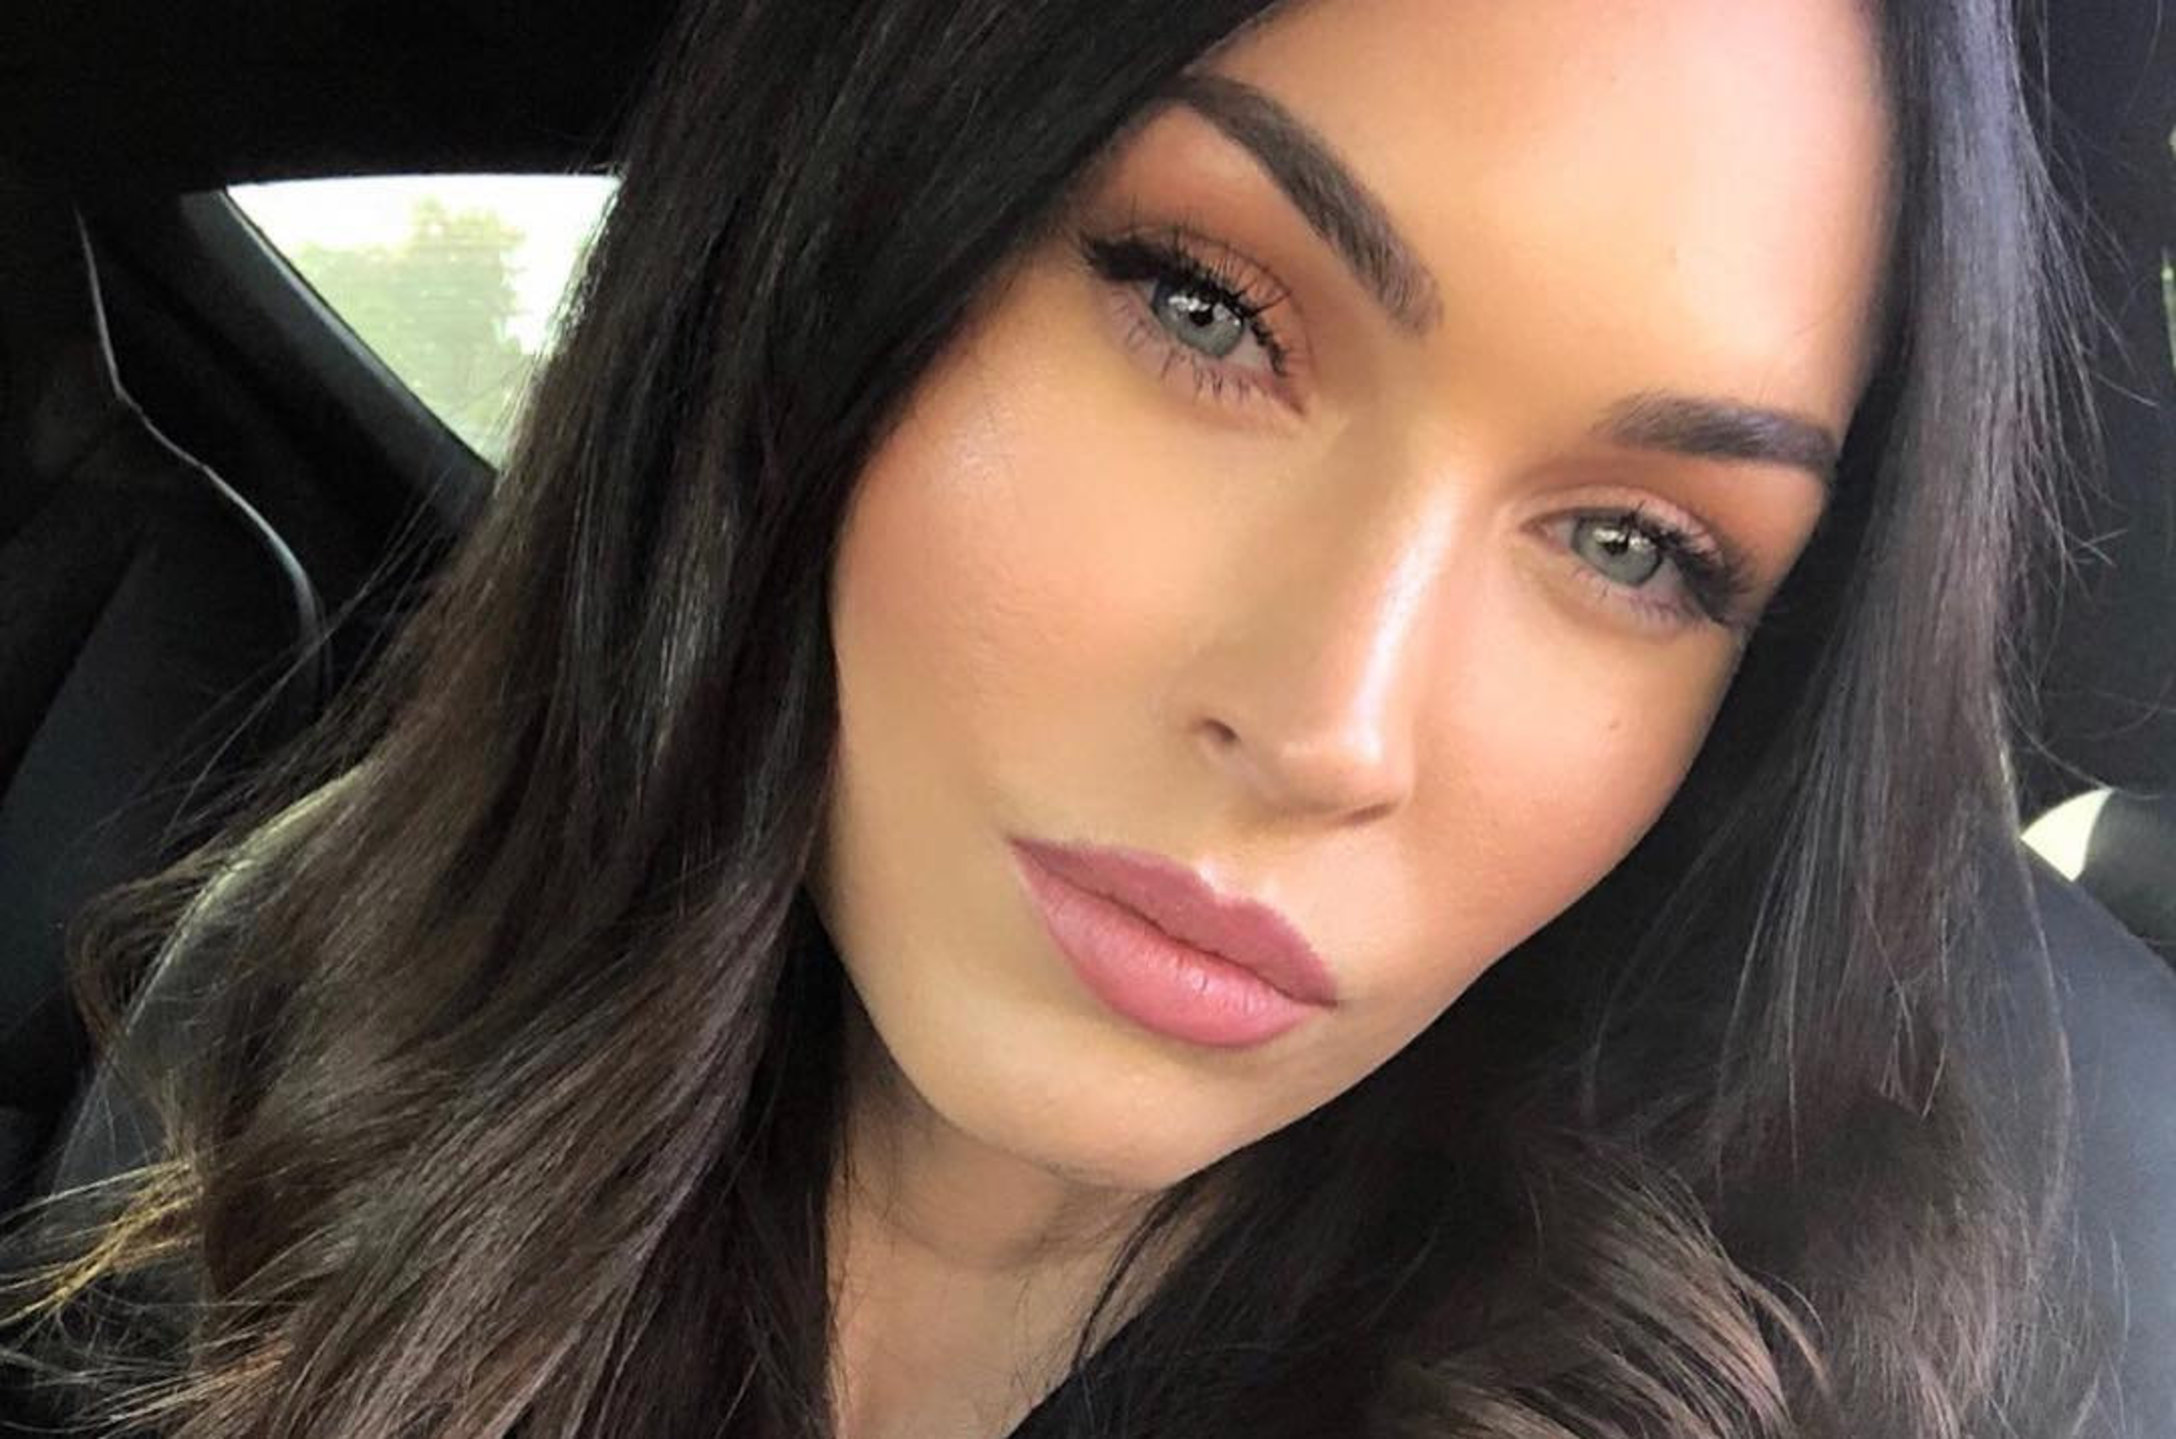 Megan Fox Opens Up About the Red Carpet Incident That Made Her Quit Drinking